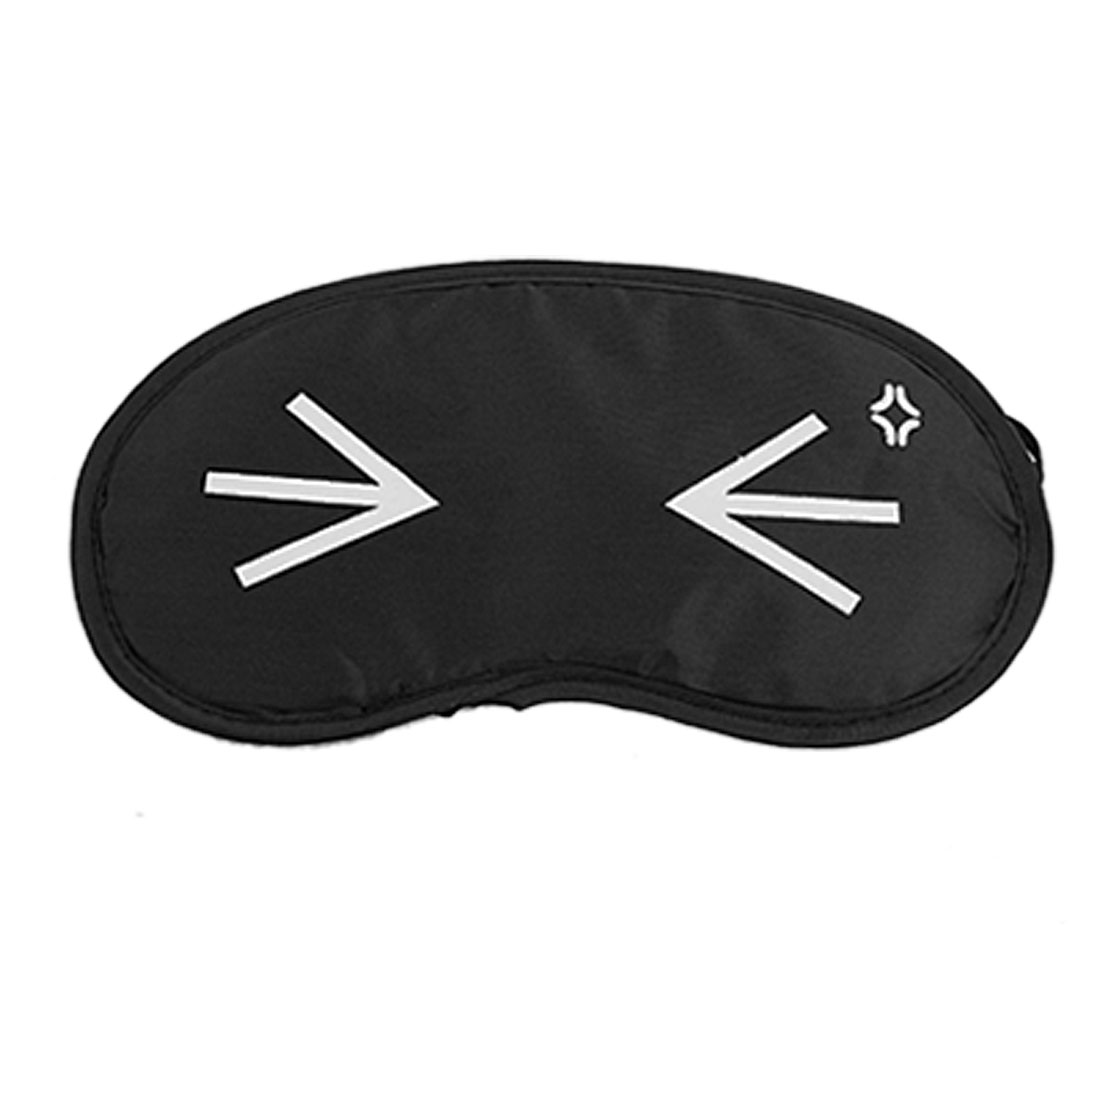 2 Pcs Cartoon Embarrass Eyes Pattern Black Nylon Eye Mask Eyeshade Sleep Blinder